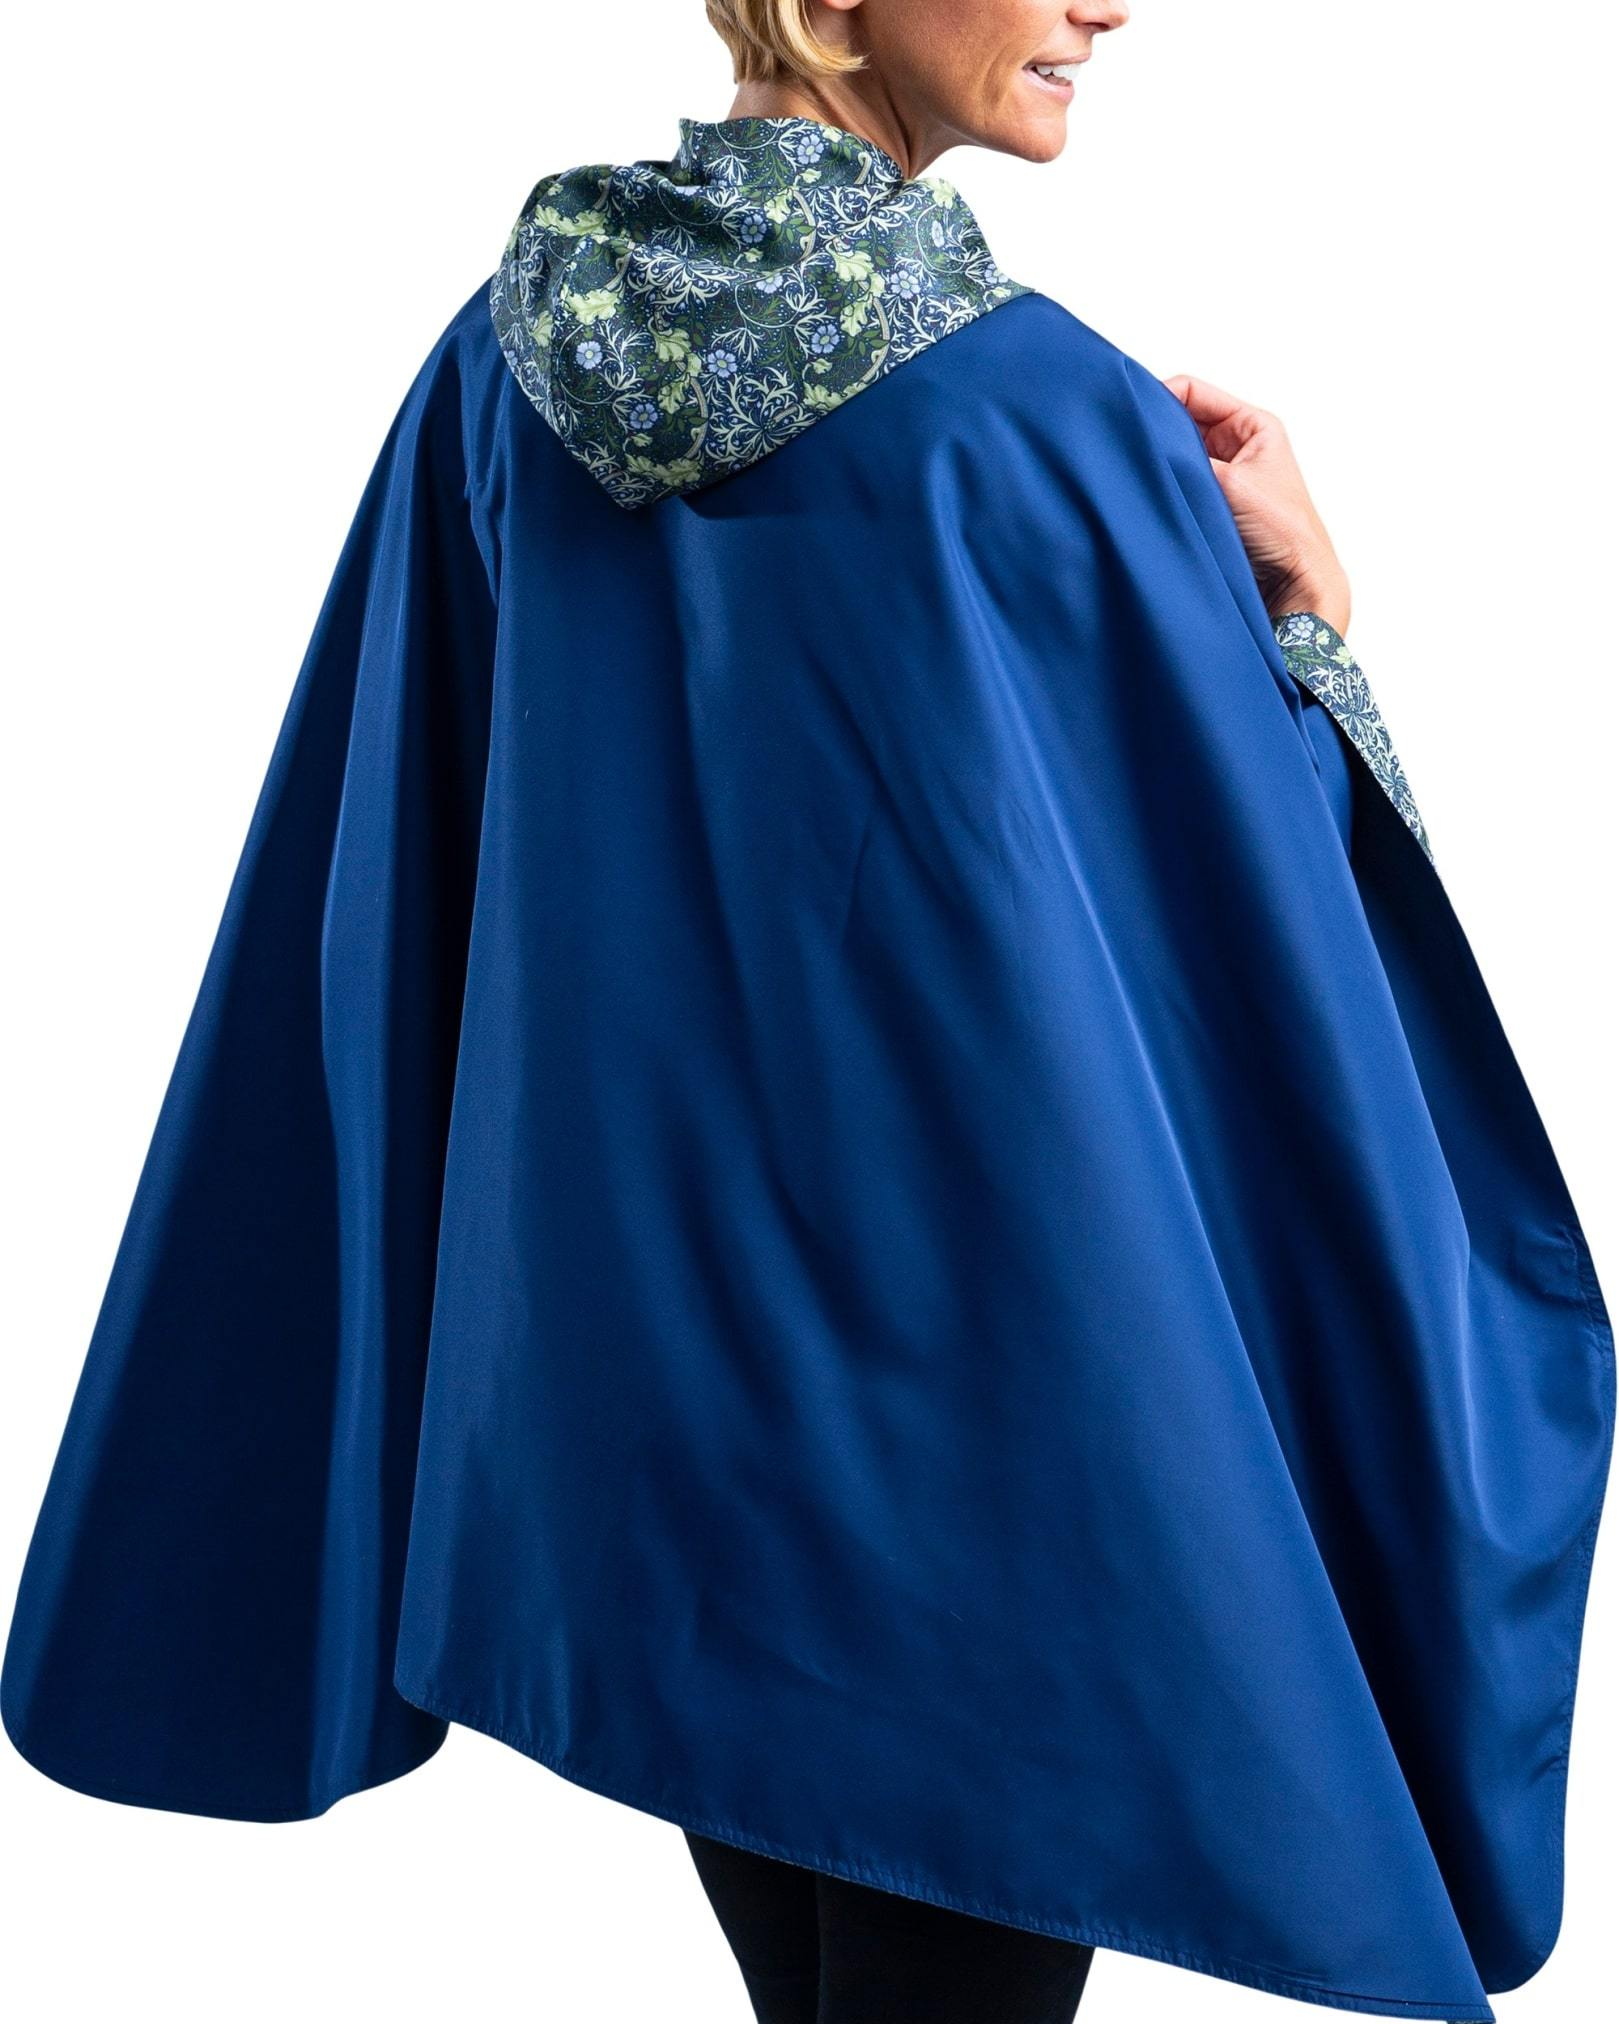 Women wearing a Navy/William Morris Seaweed RainCaper travel cape